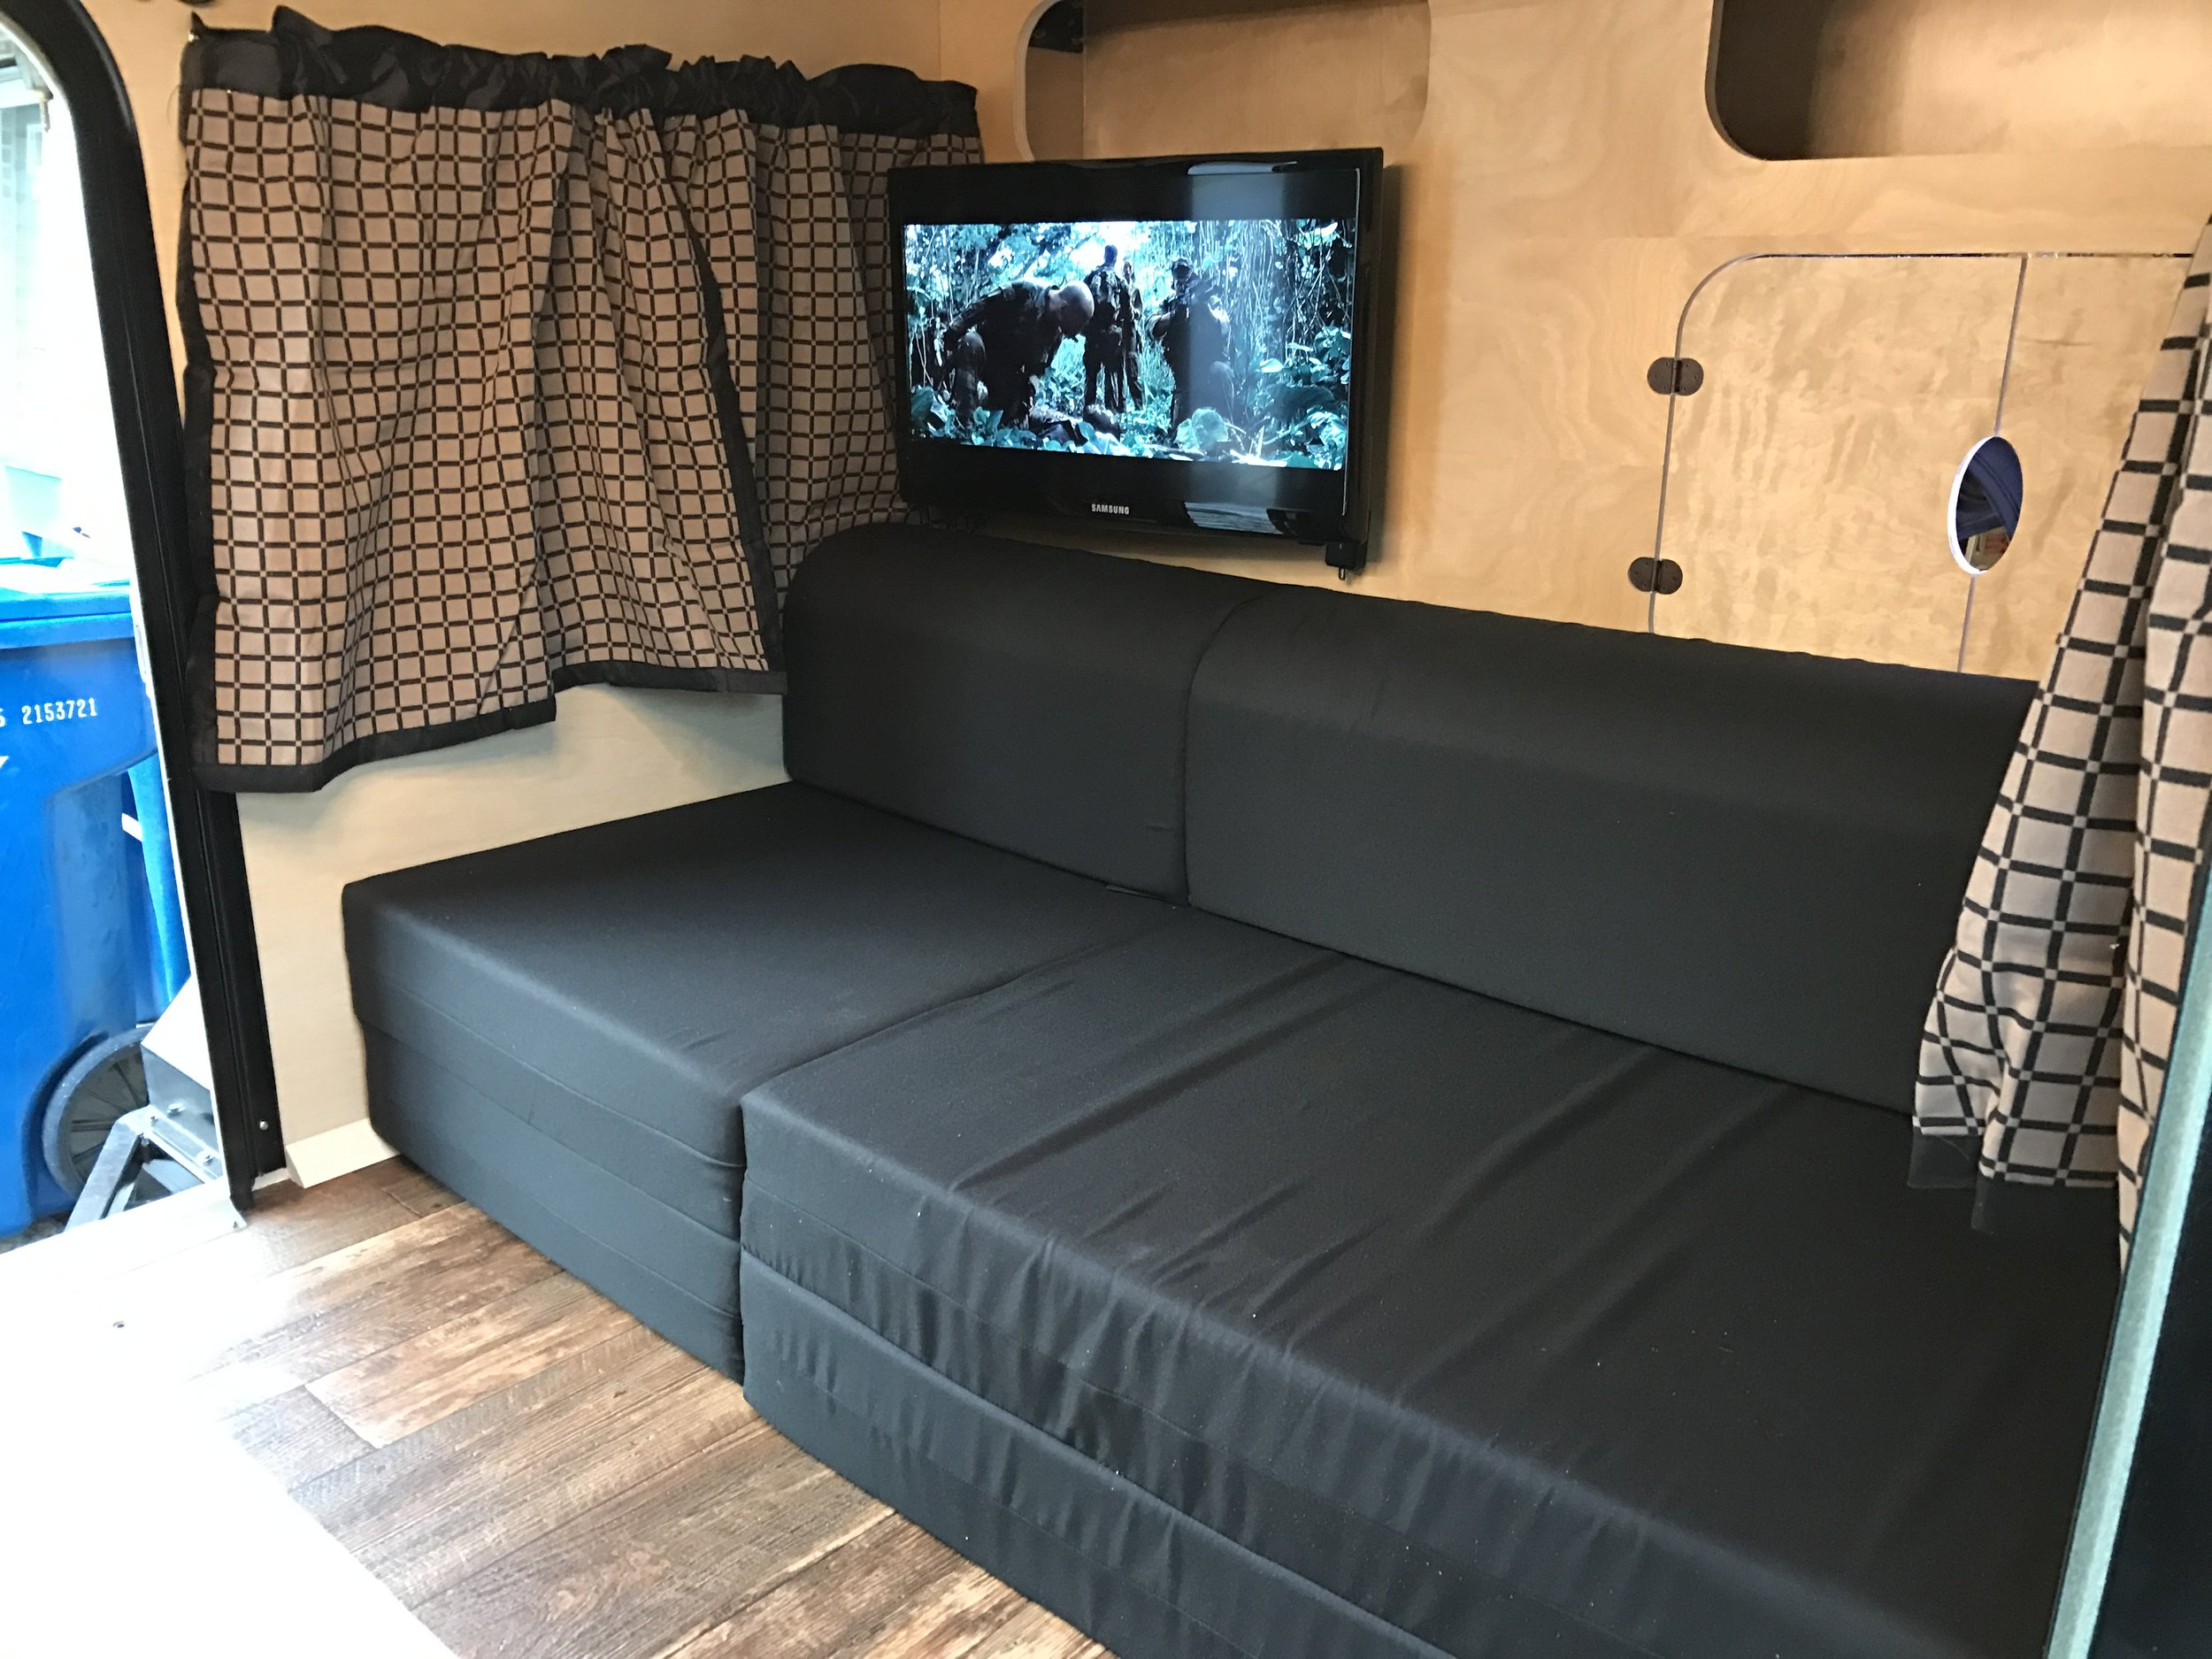 Interior 60/40 split mattress / chairs, Smart TV and curtains.